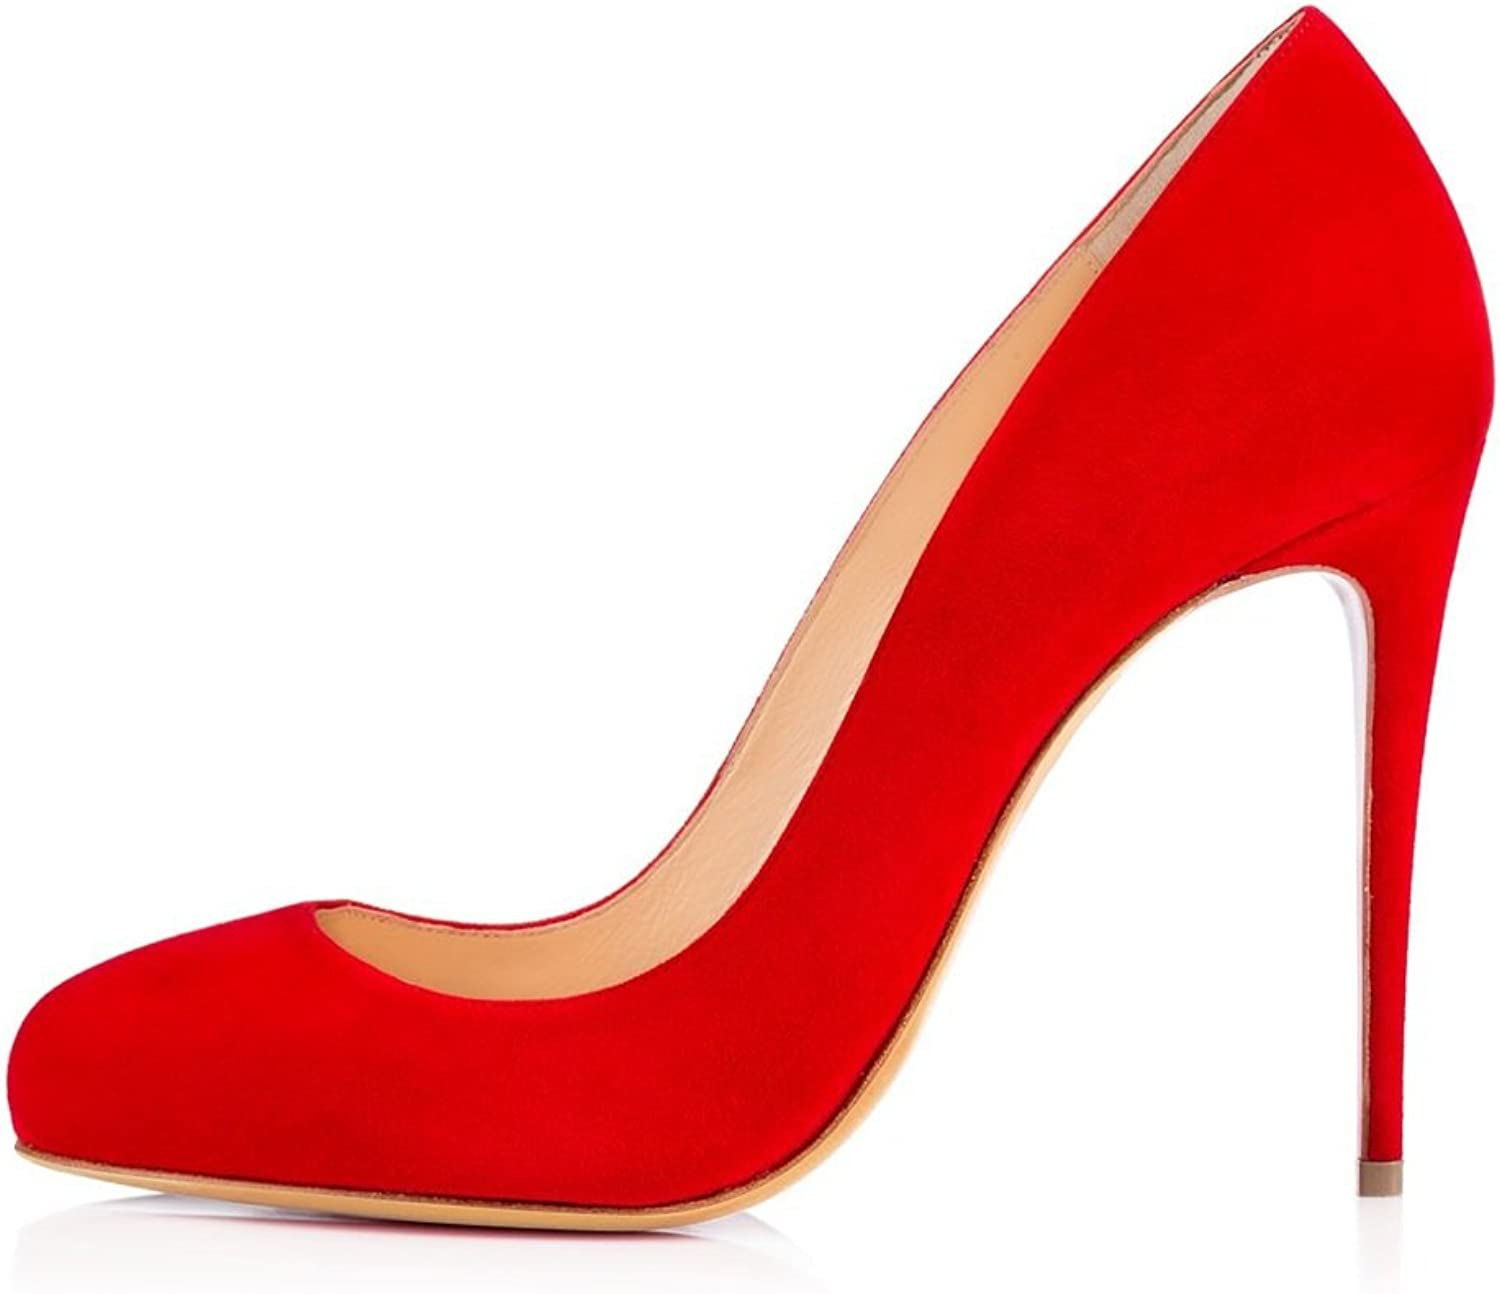 Sammitop Women's Closed Toe Pumps High Heel Round Toe Dress shoes Stiletto Party Prom Wedding shoes